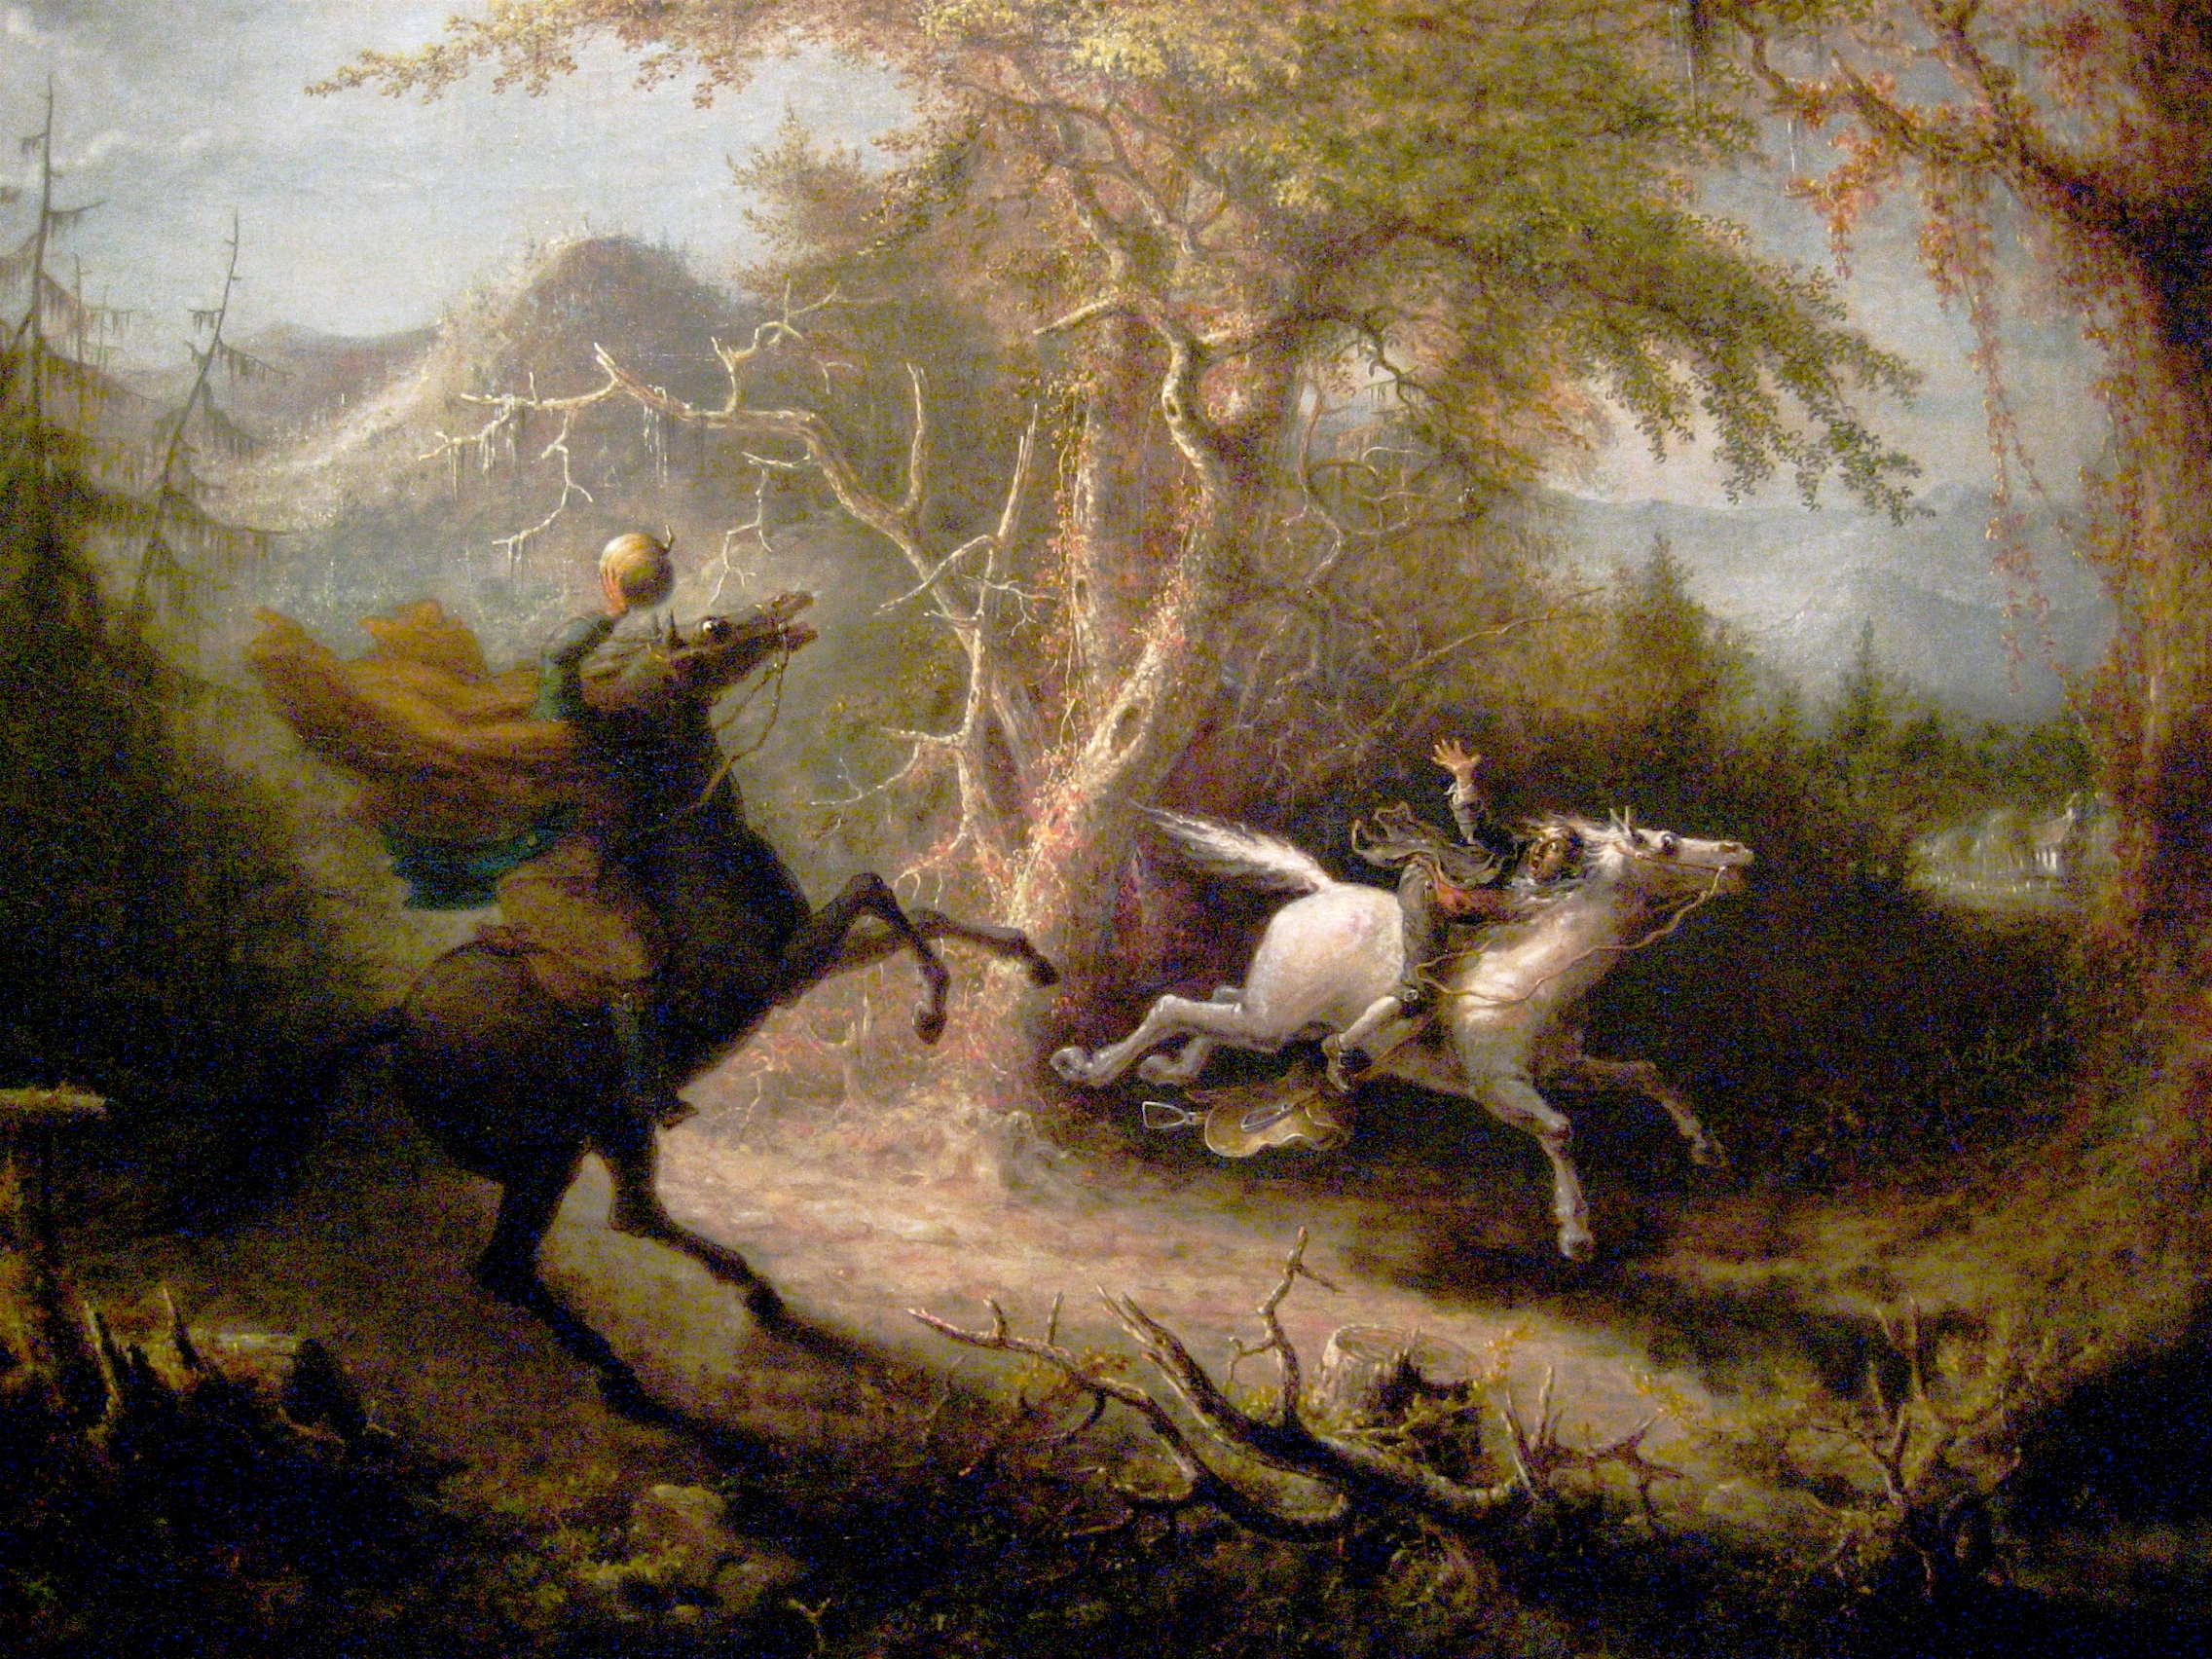 The Headless Horseman Pursuing Ichabod Crane (1858) by John Quidor